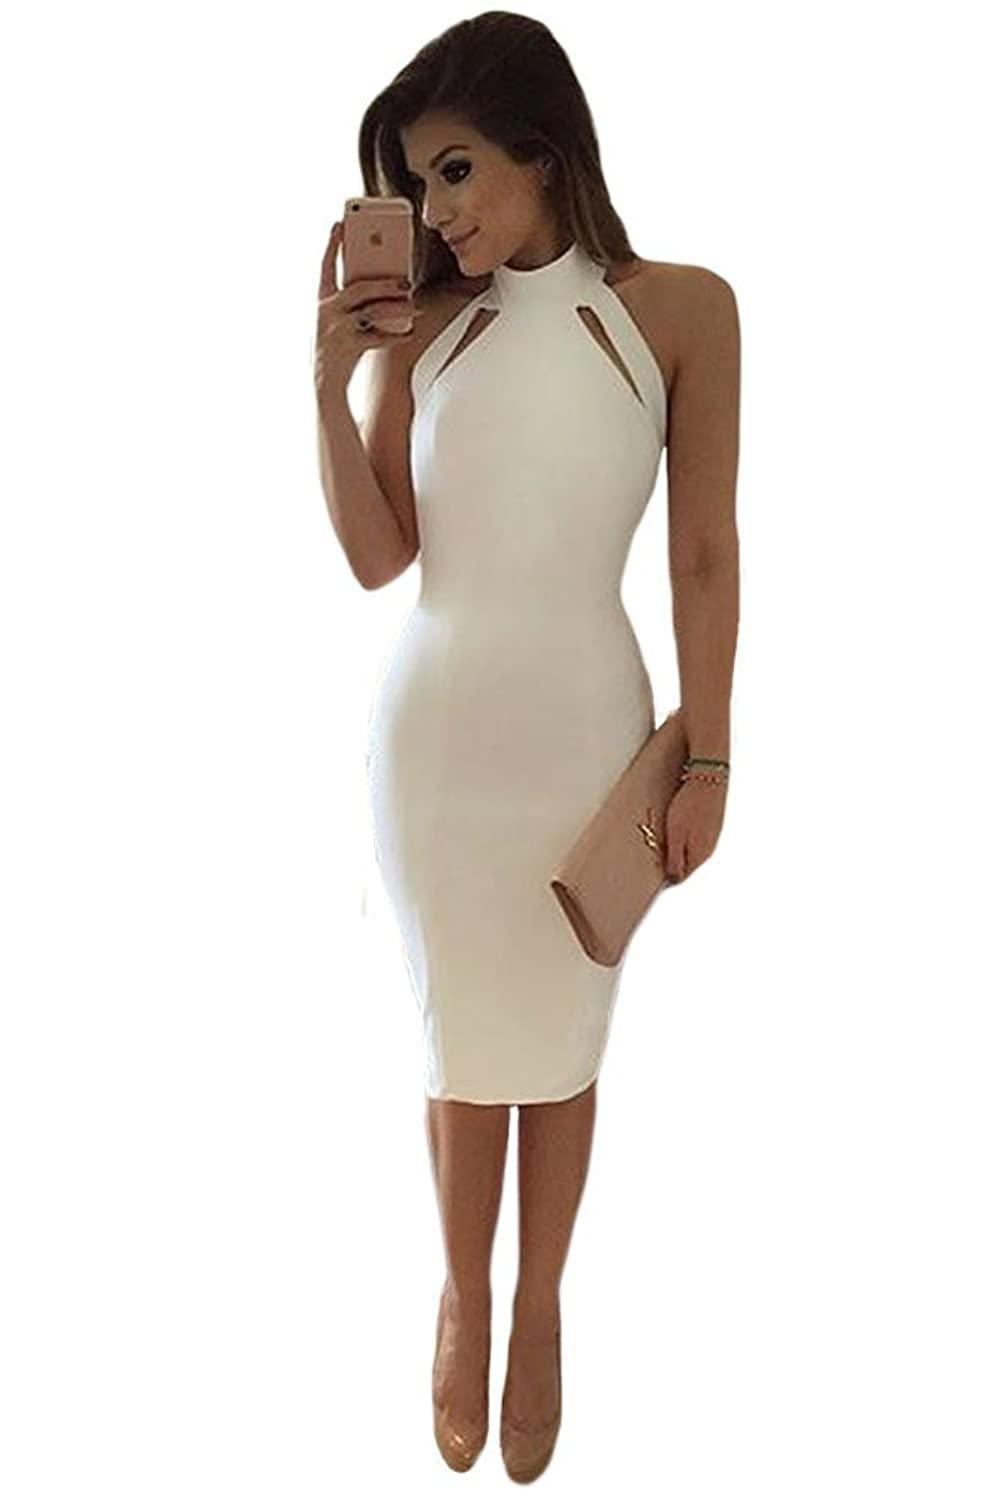 Firstshop Women's Sexy Beautiful White Cutout Detail High Neck Mid Dress